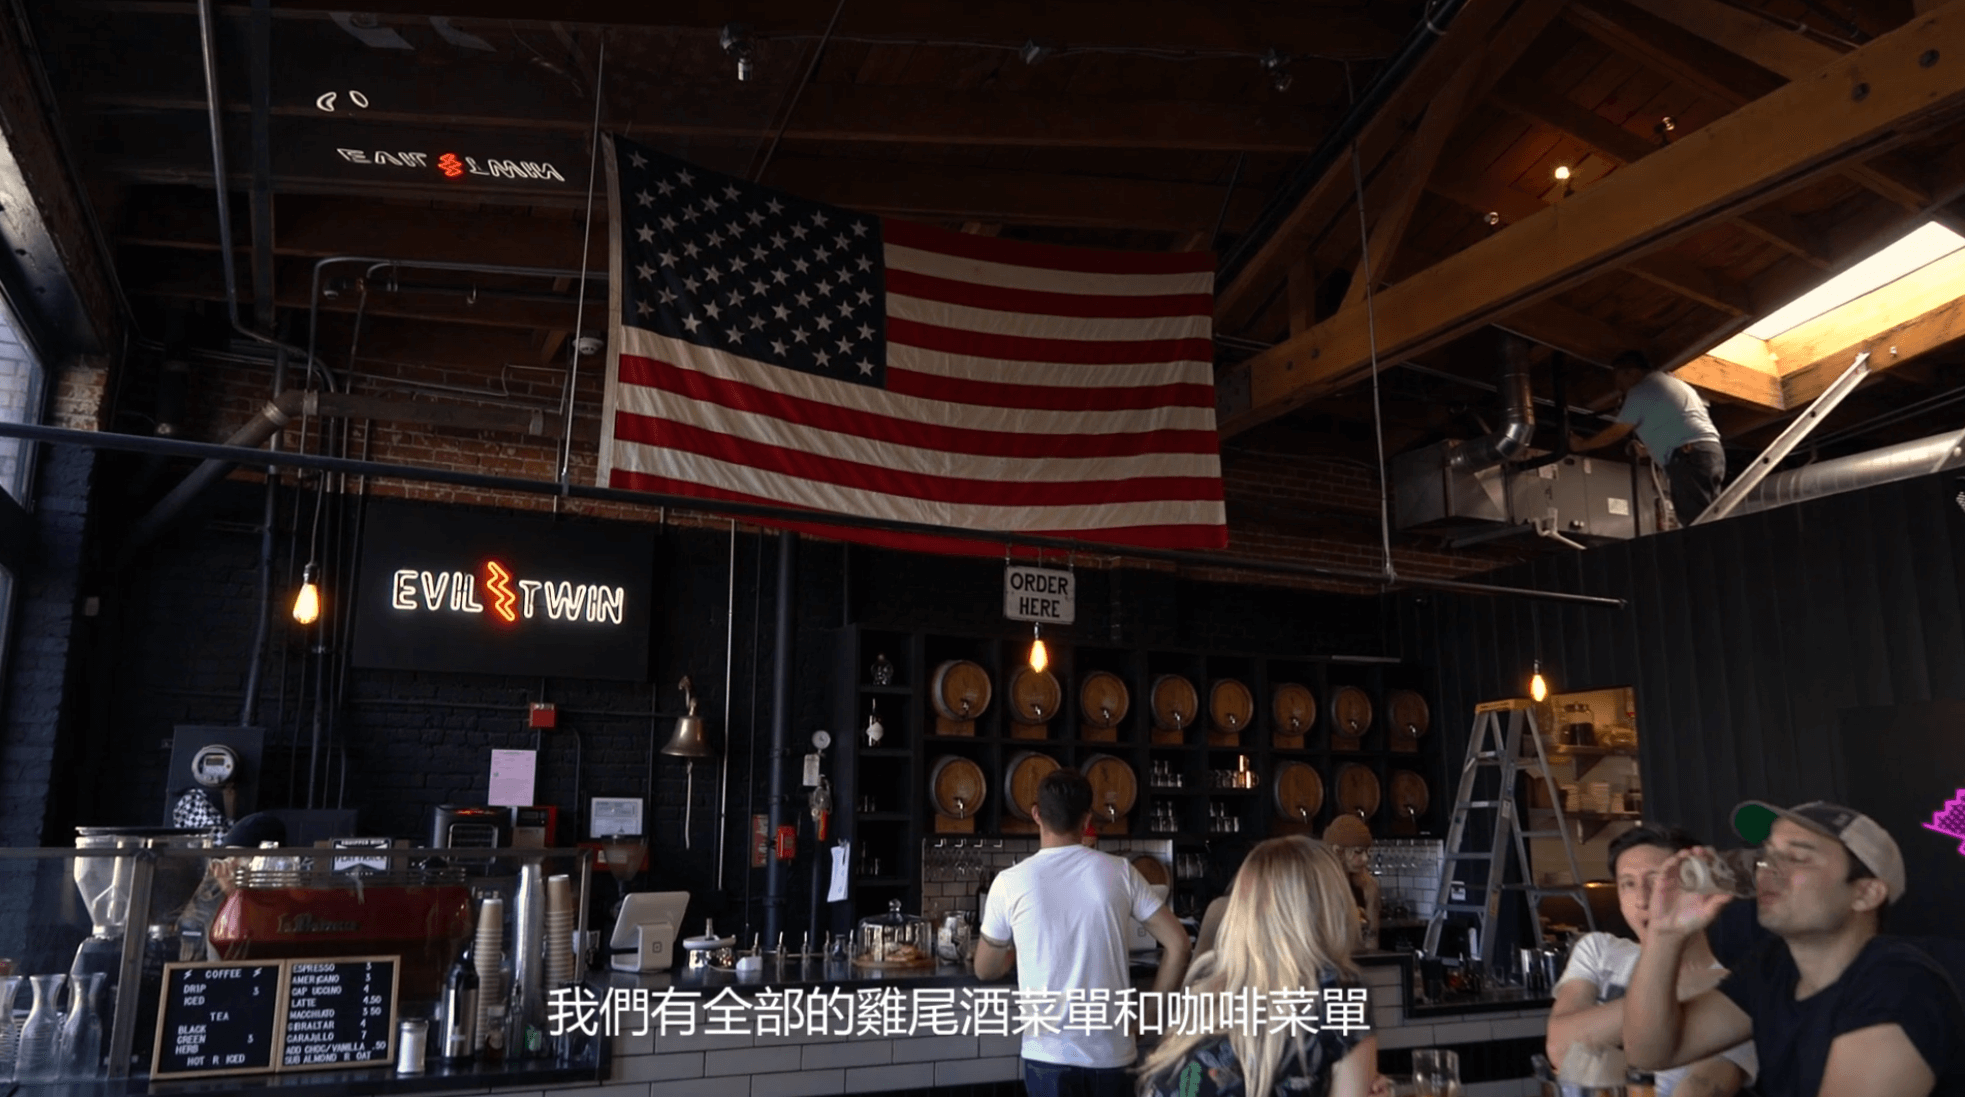 House Of Machines 咖啡店和酒吧